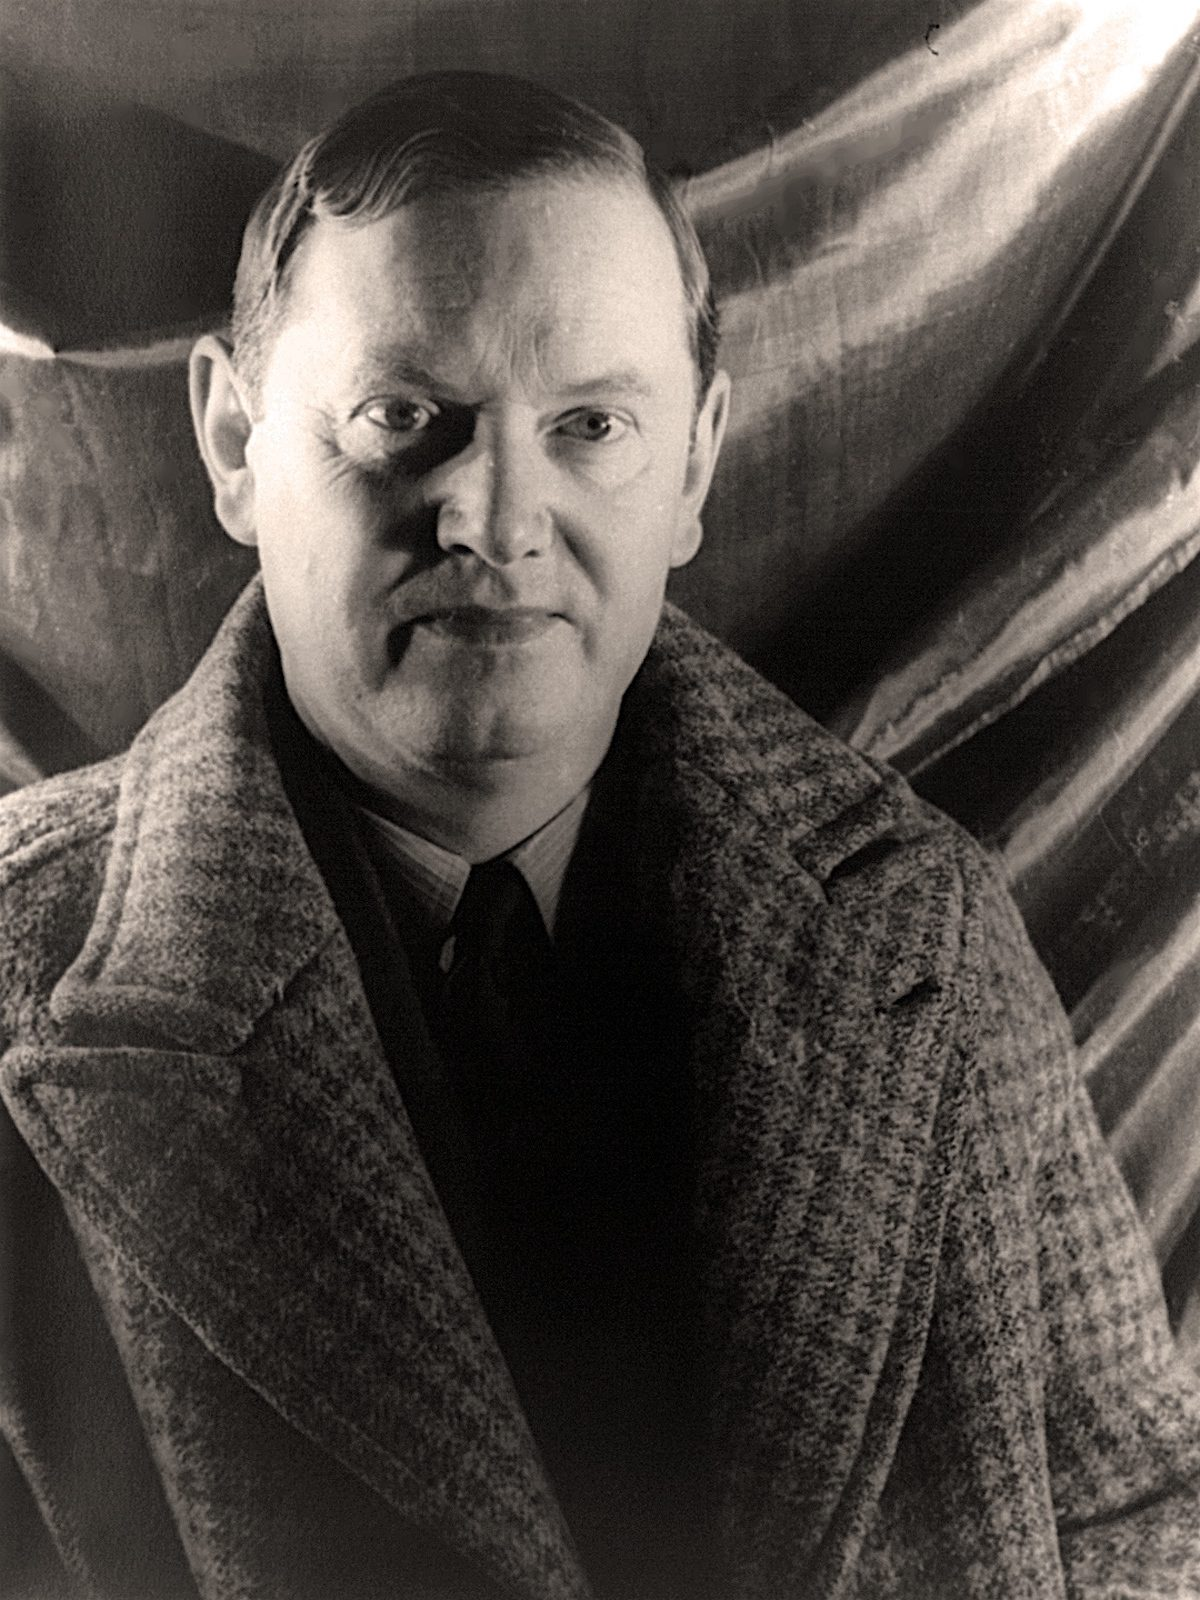 Evelyn Waugh, Carl Van Vechten, photography